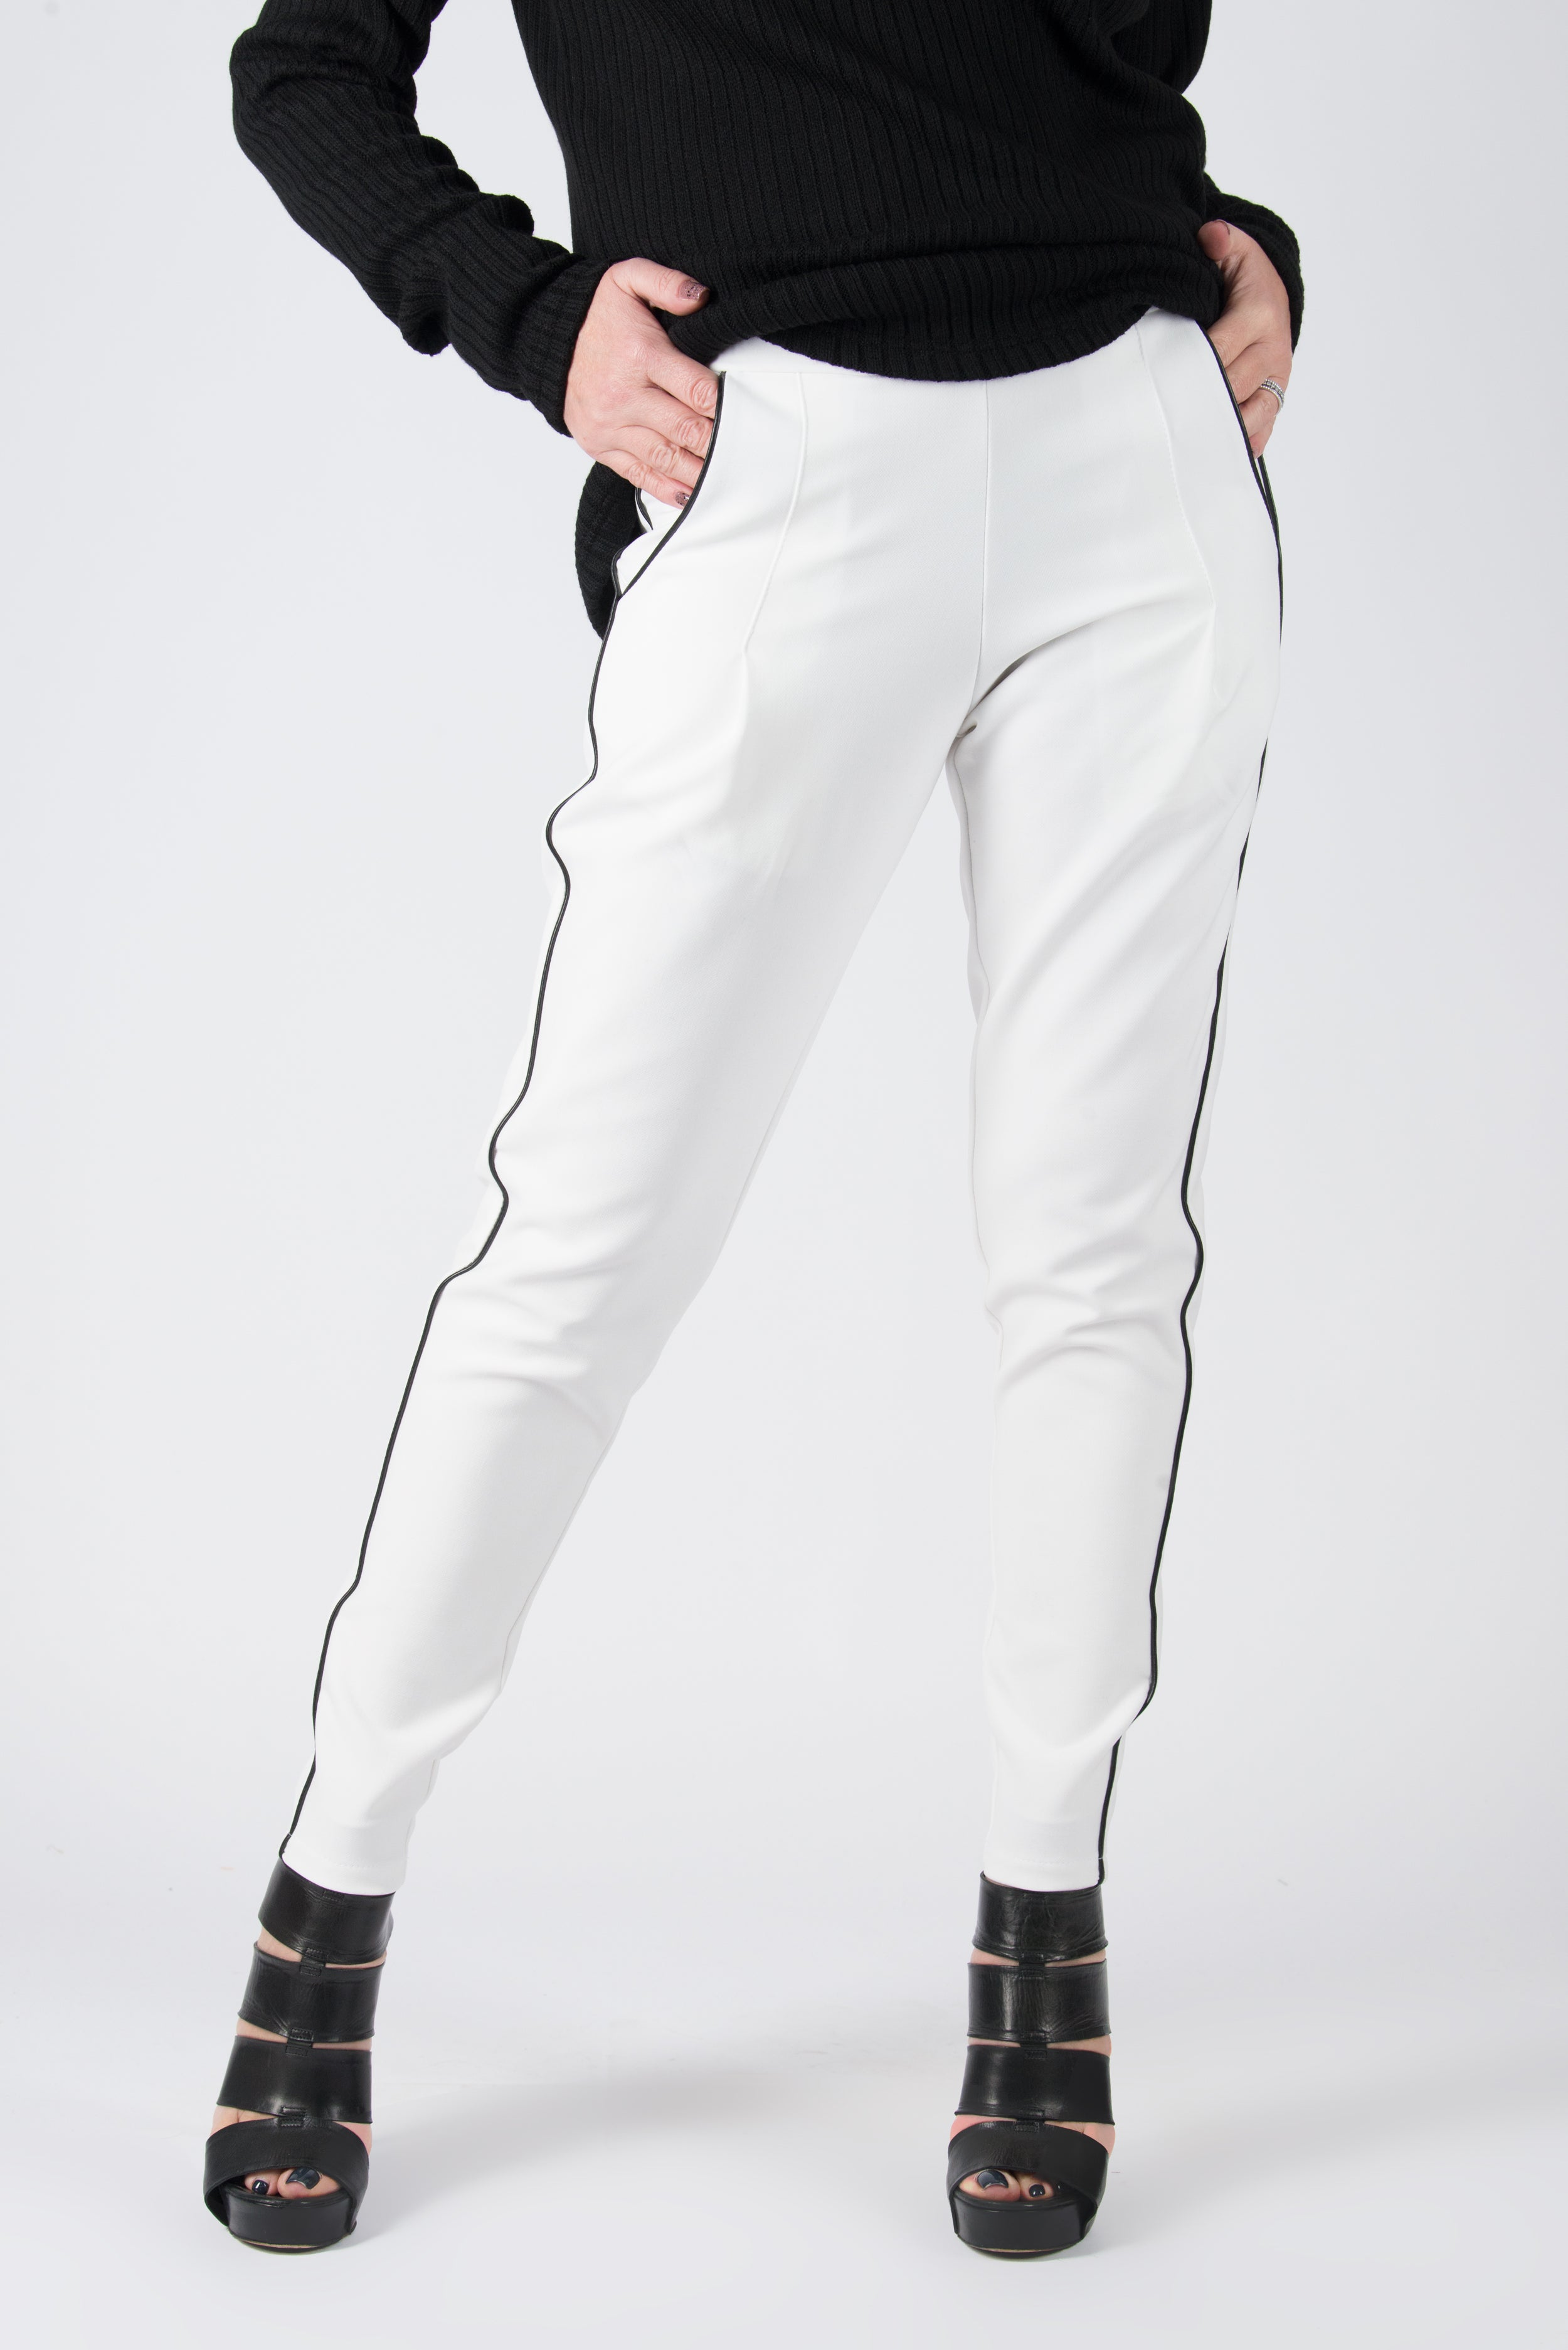 White Tight Pants, White Elegant leggings, New Arrival